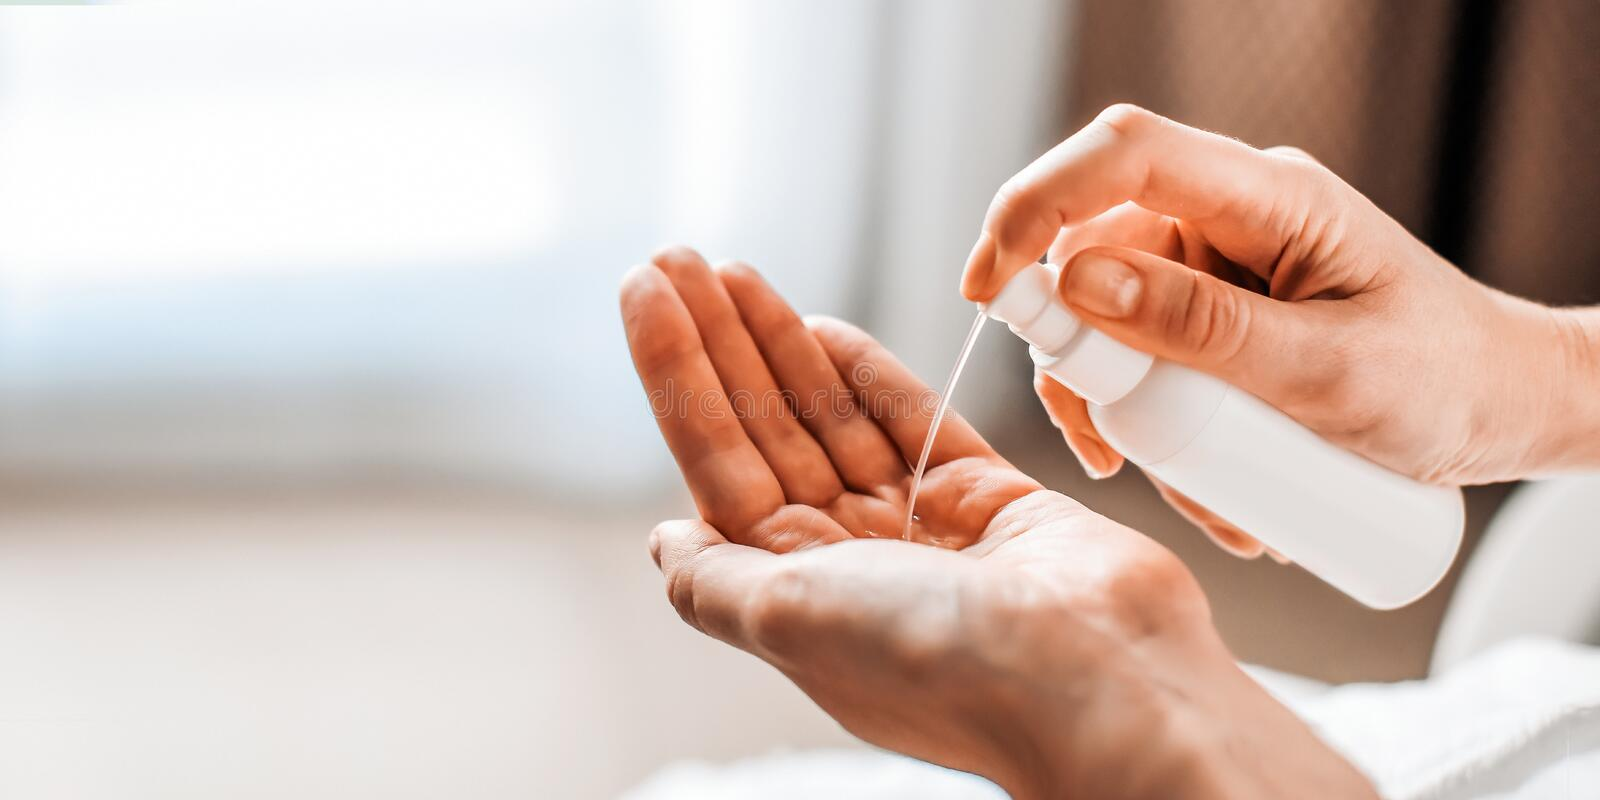 A woman puts on the hands of cosmetics from a bottle or liquid natural soap. Body care concept Banner royalty free stock photography